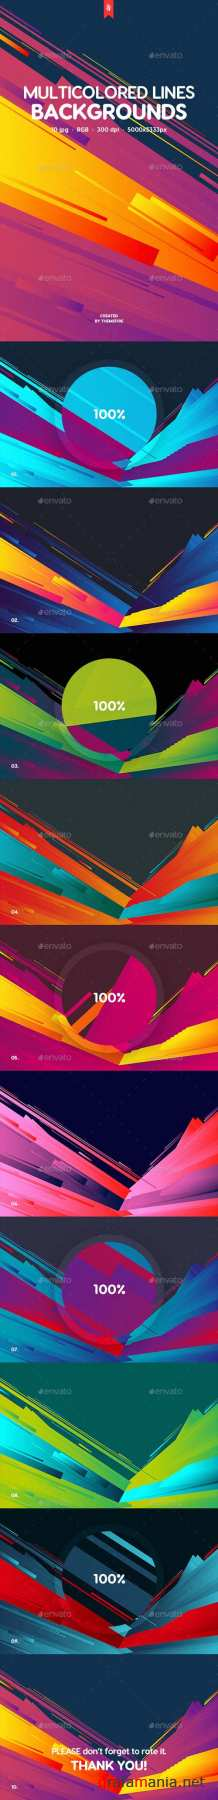 Abstract Multicolored Flat Layered Lines Backgrounds 20234066